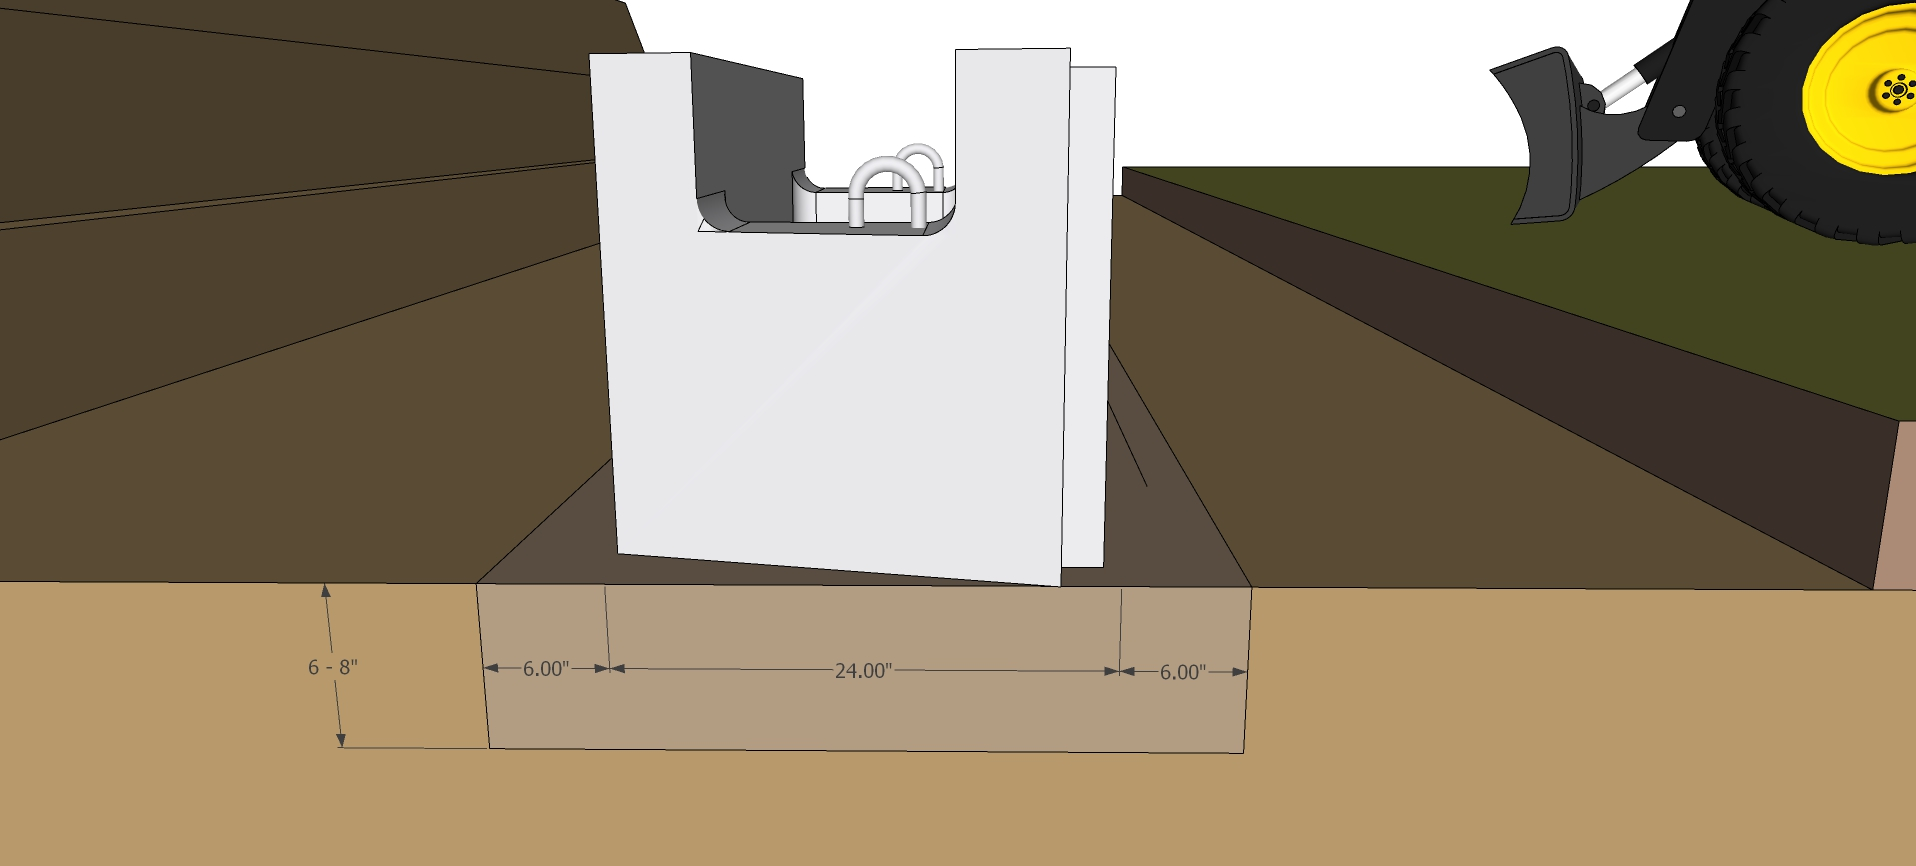 Base gravel measurements for retaining wall